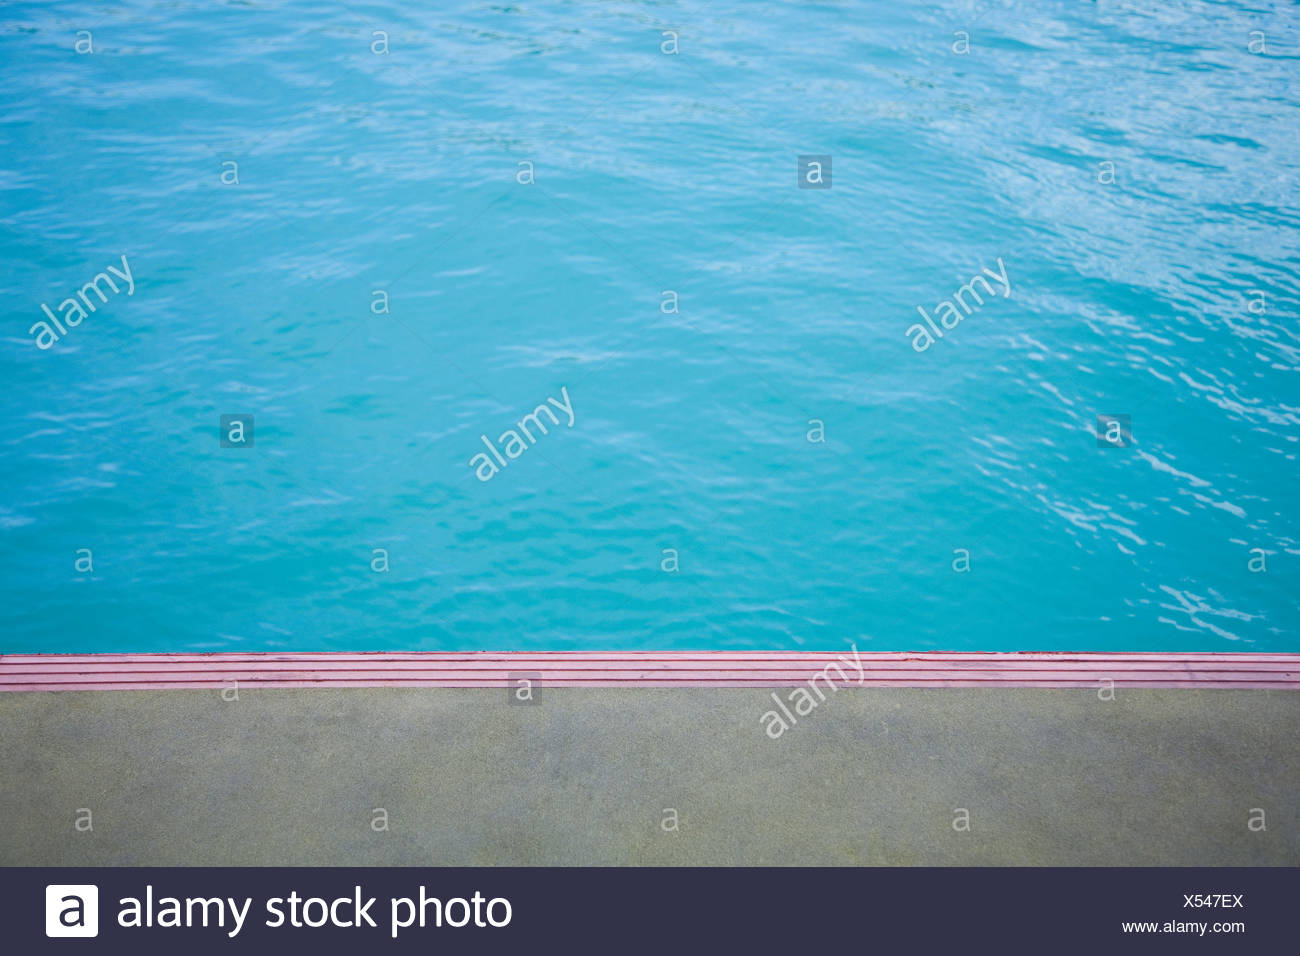 Blue water, abstract - Stock Image